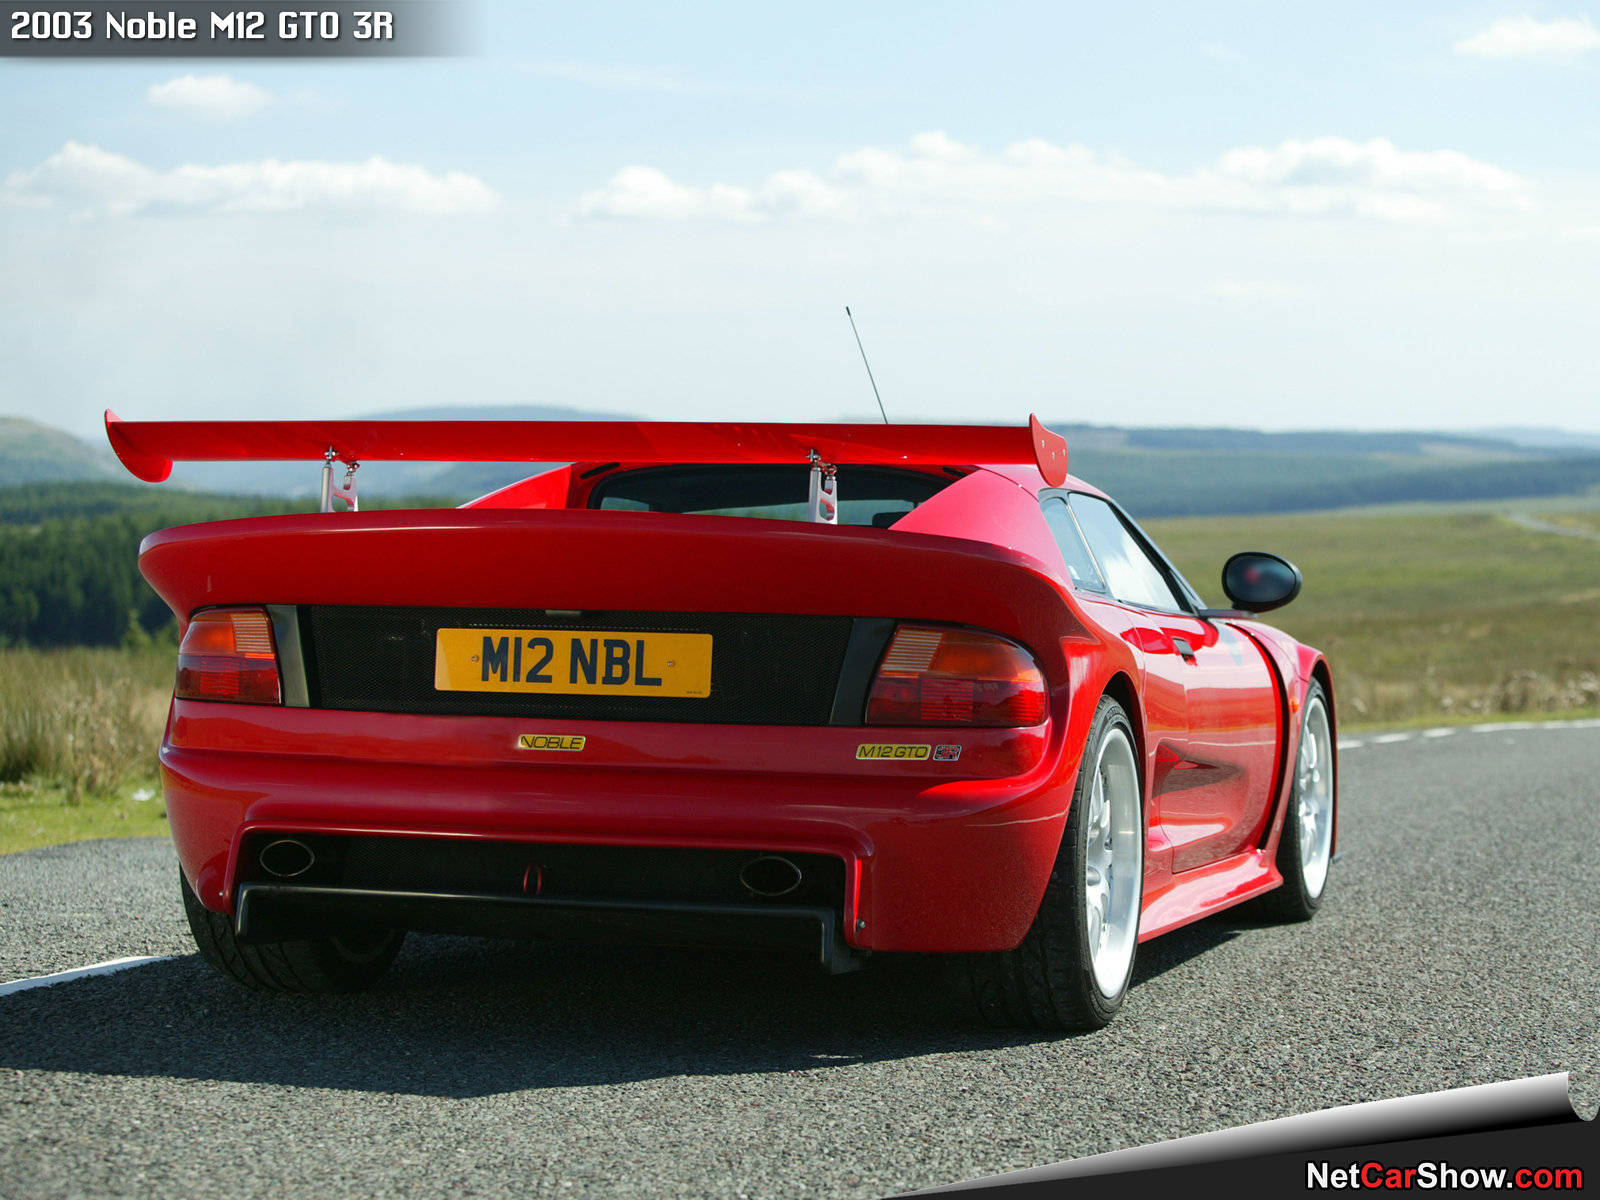 noble m12 gto images #9